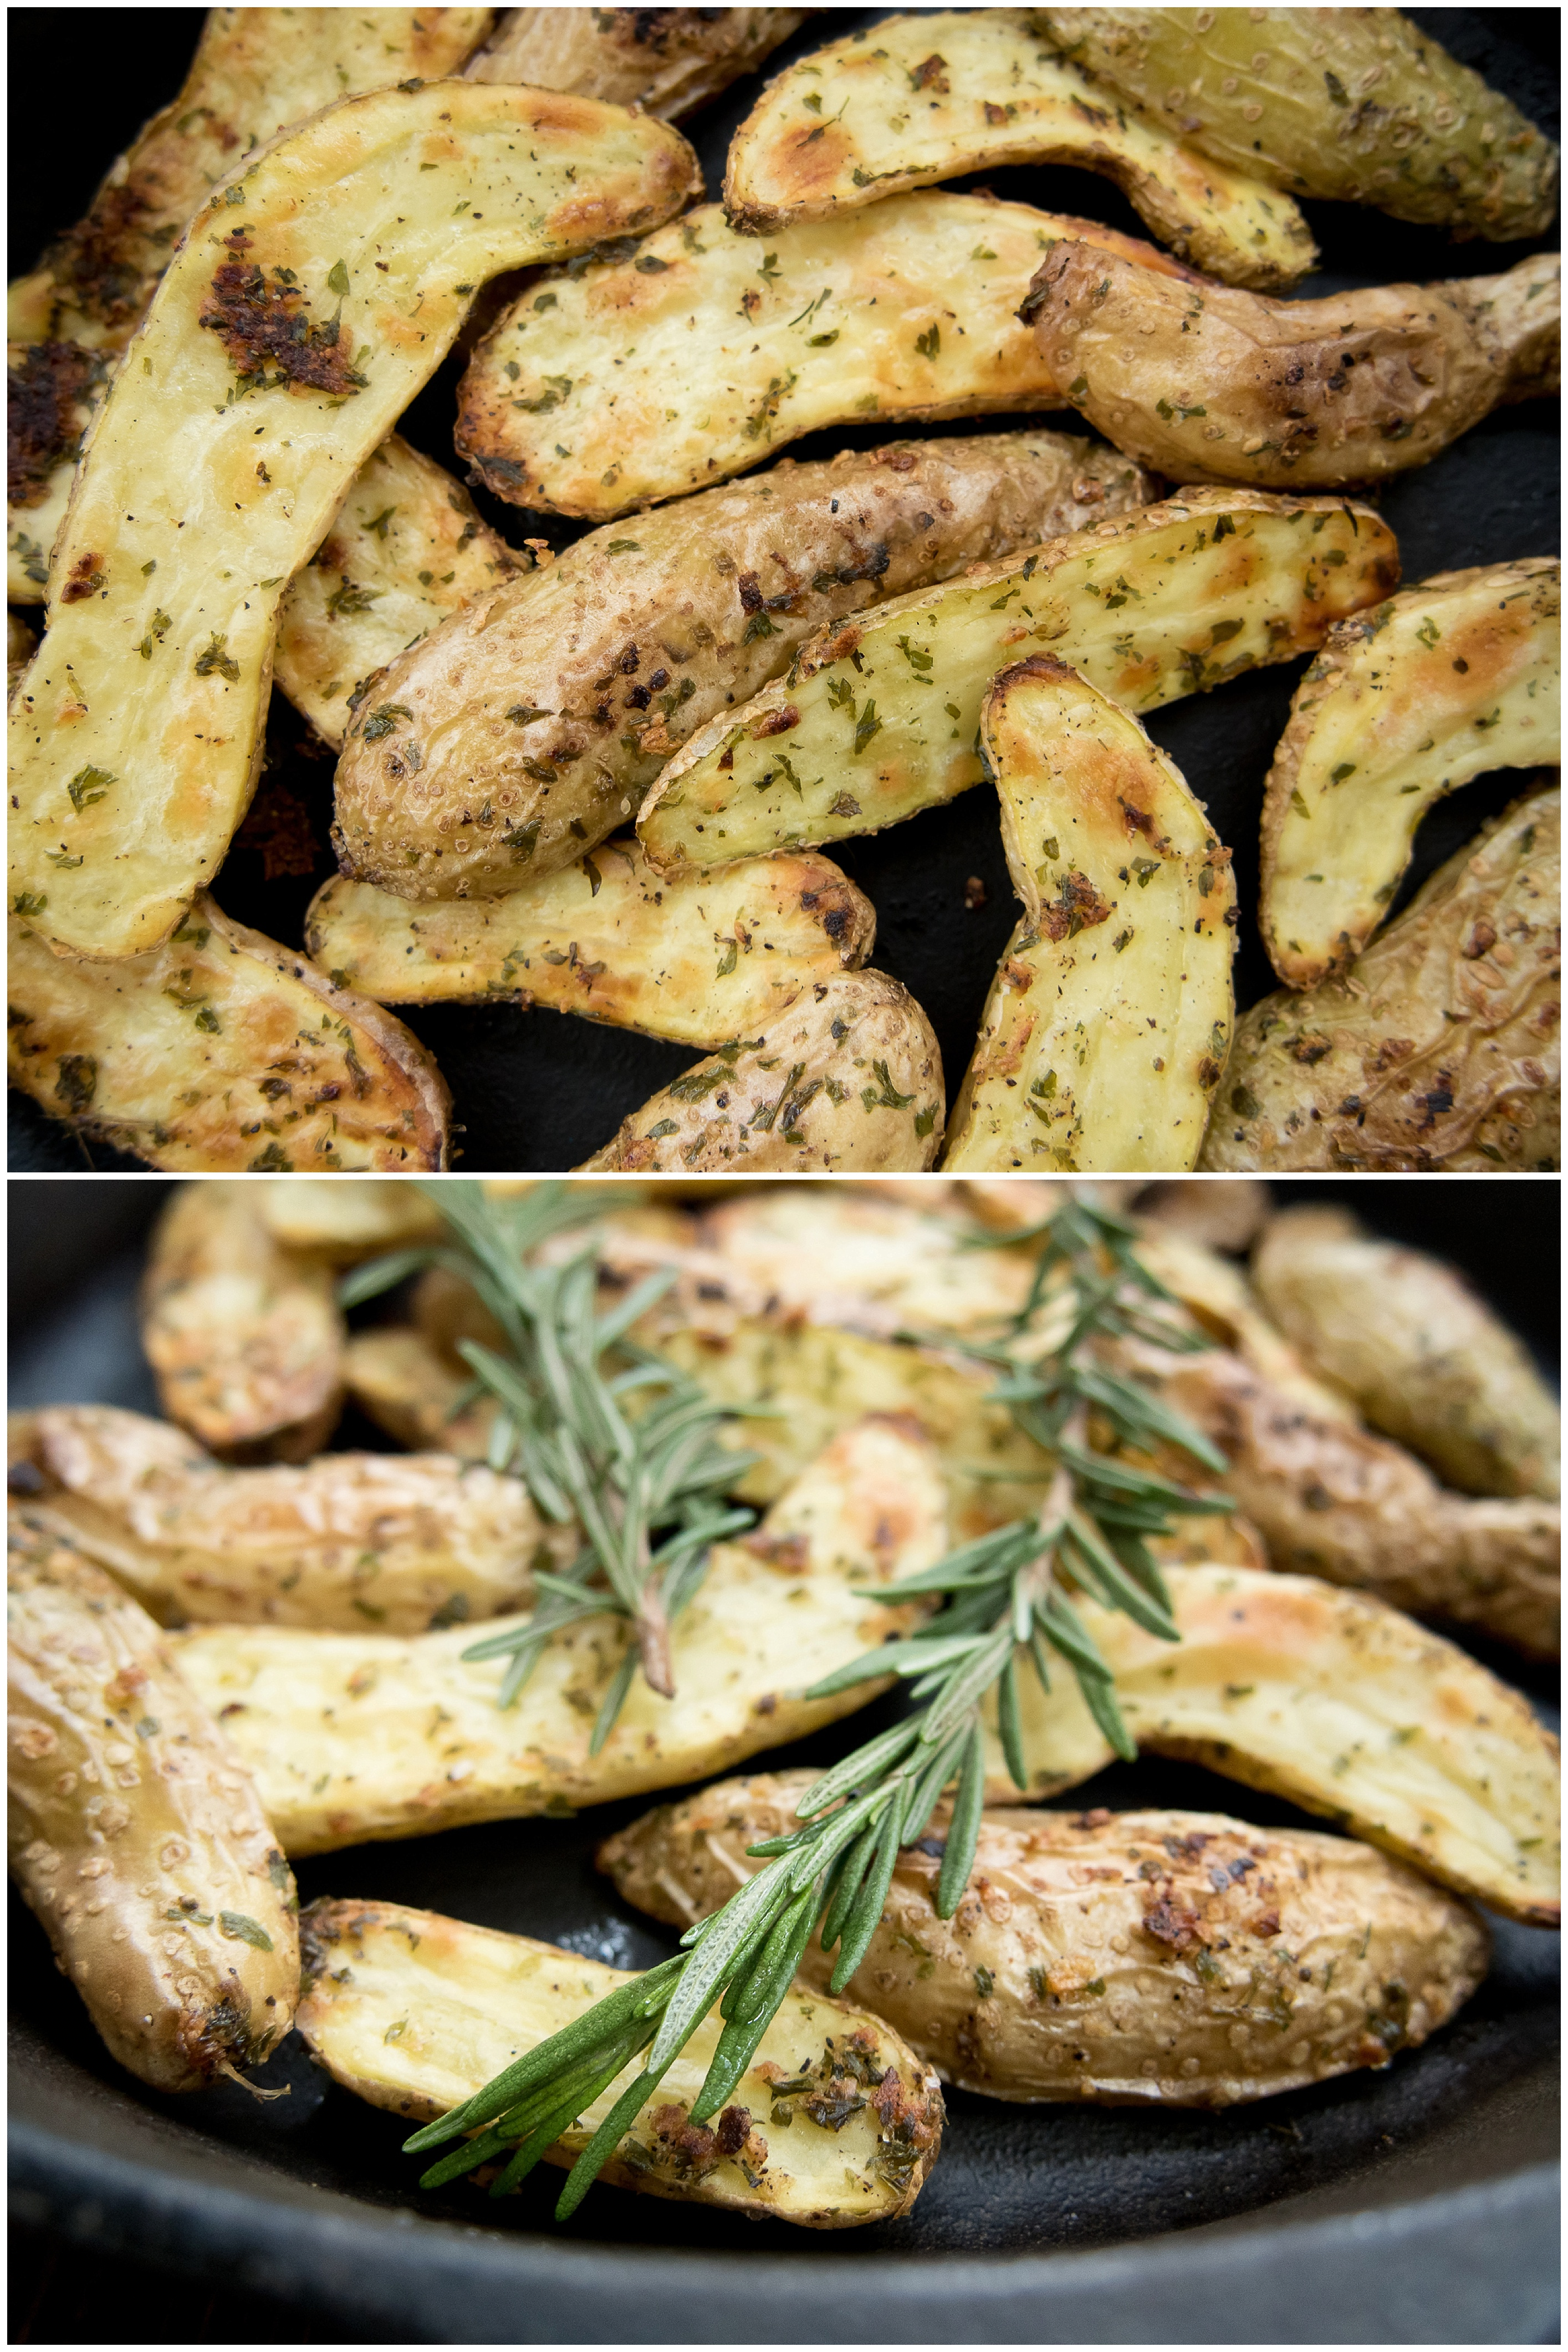 Garlic and Herb Fingerling Potatoes are my favorite! They are the perfect size, cook quickly, and develop the best little crunch. These use fresh herbs to elevate the perfect side dish. www.thenewmrsallen.com